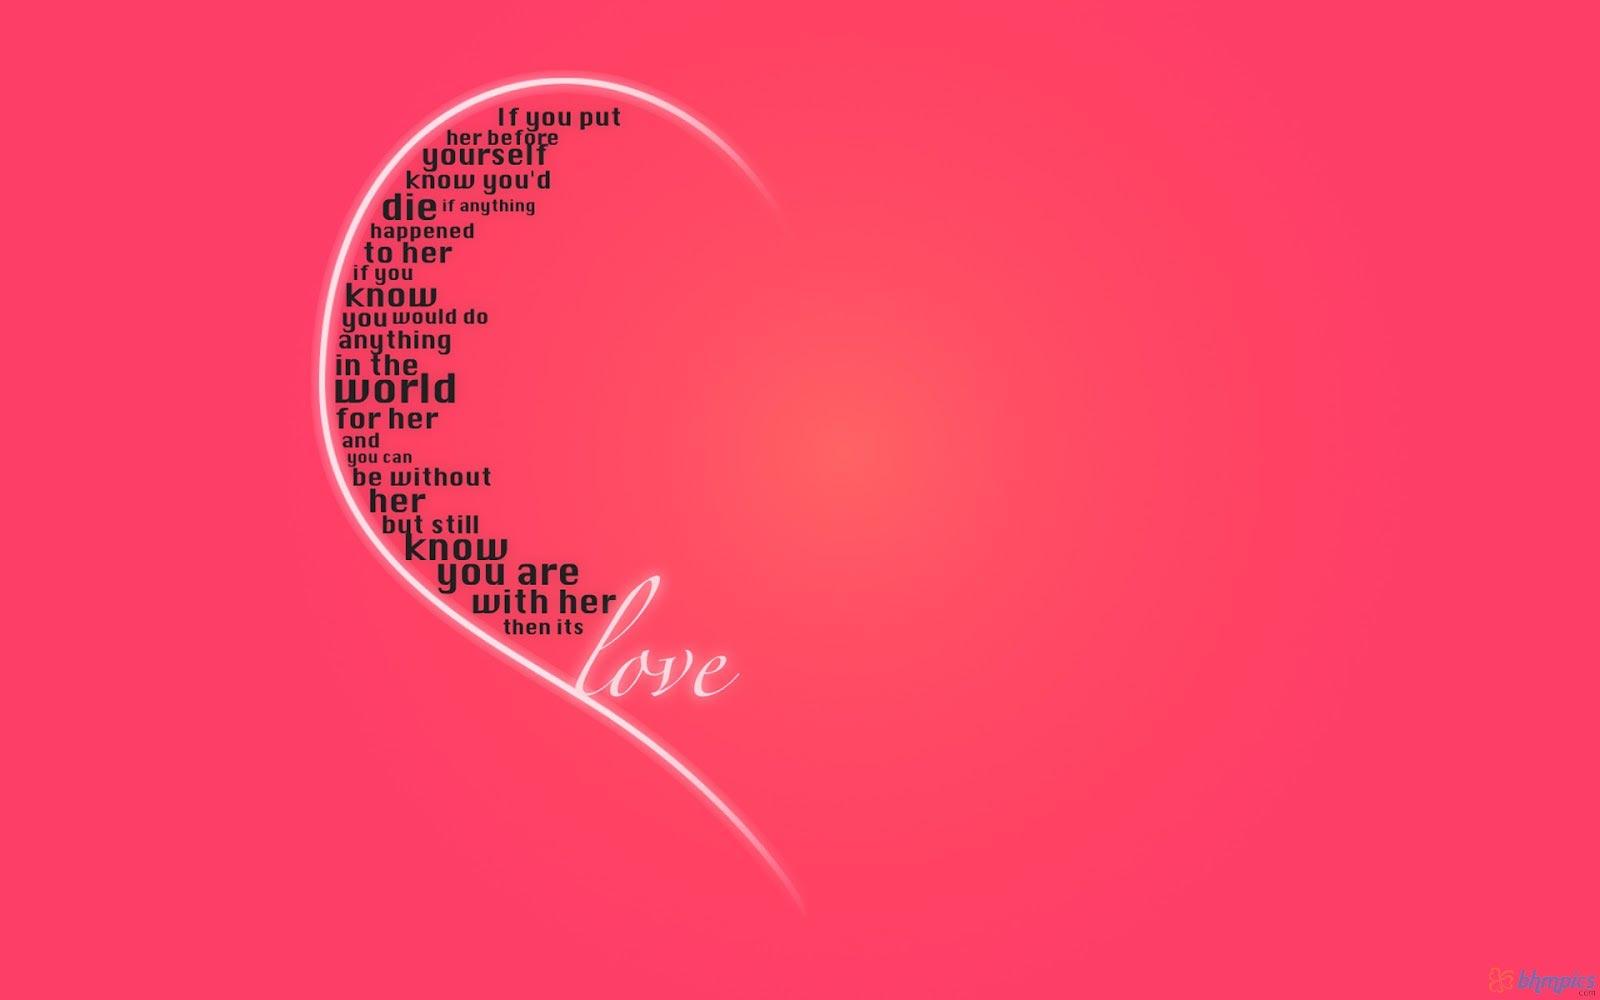 Awesome cute Love Wallpaper : Awesome Love Wallpapers For Desktop - DezignHD - Best Source for Designer and Developers